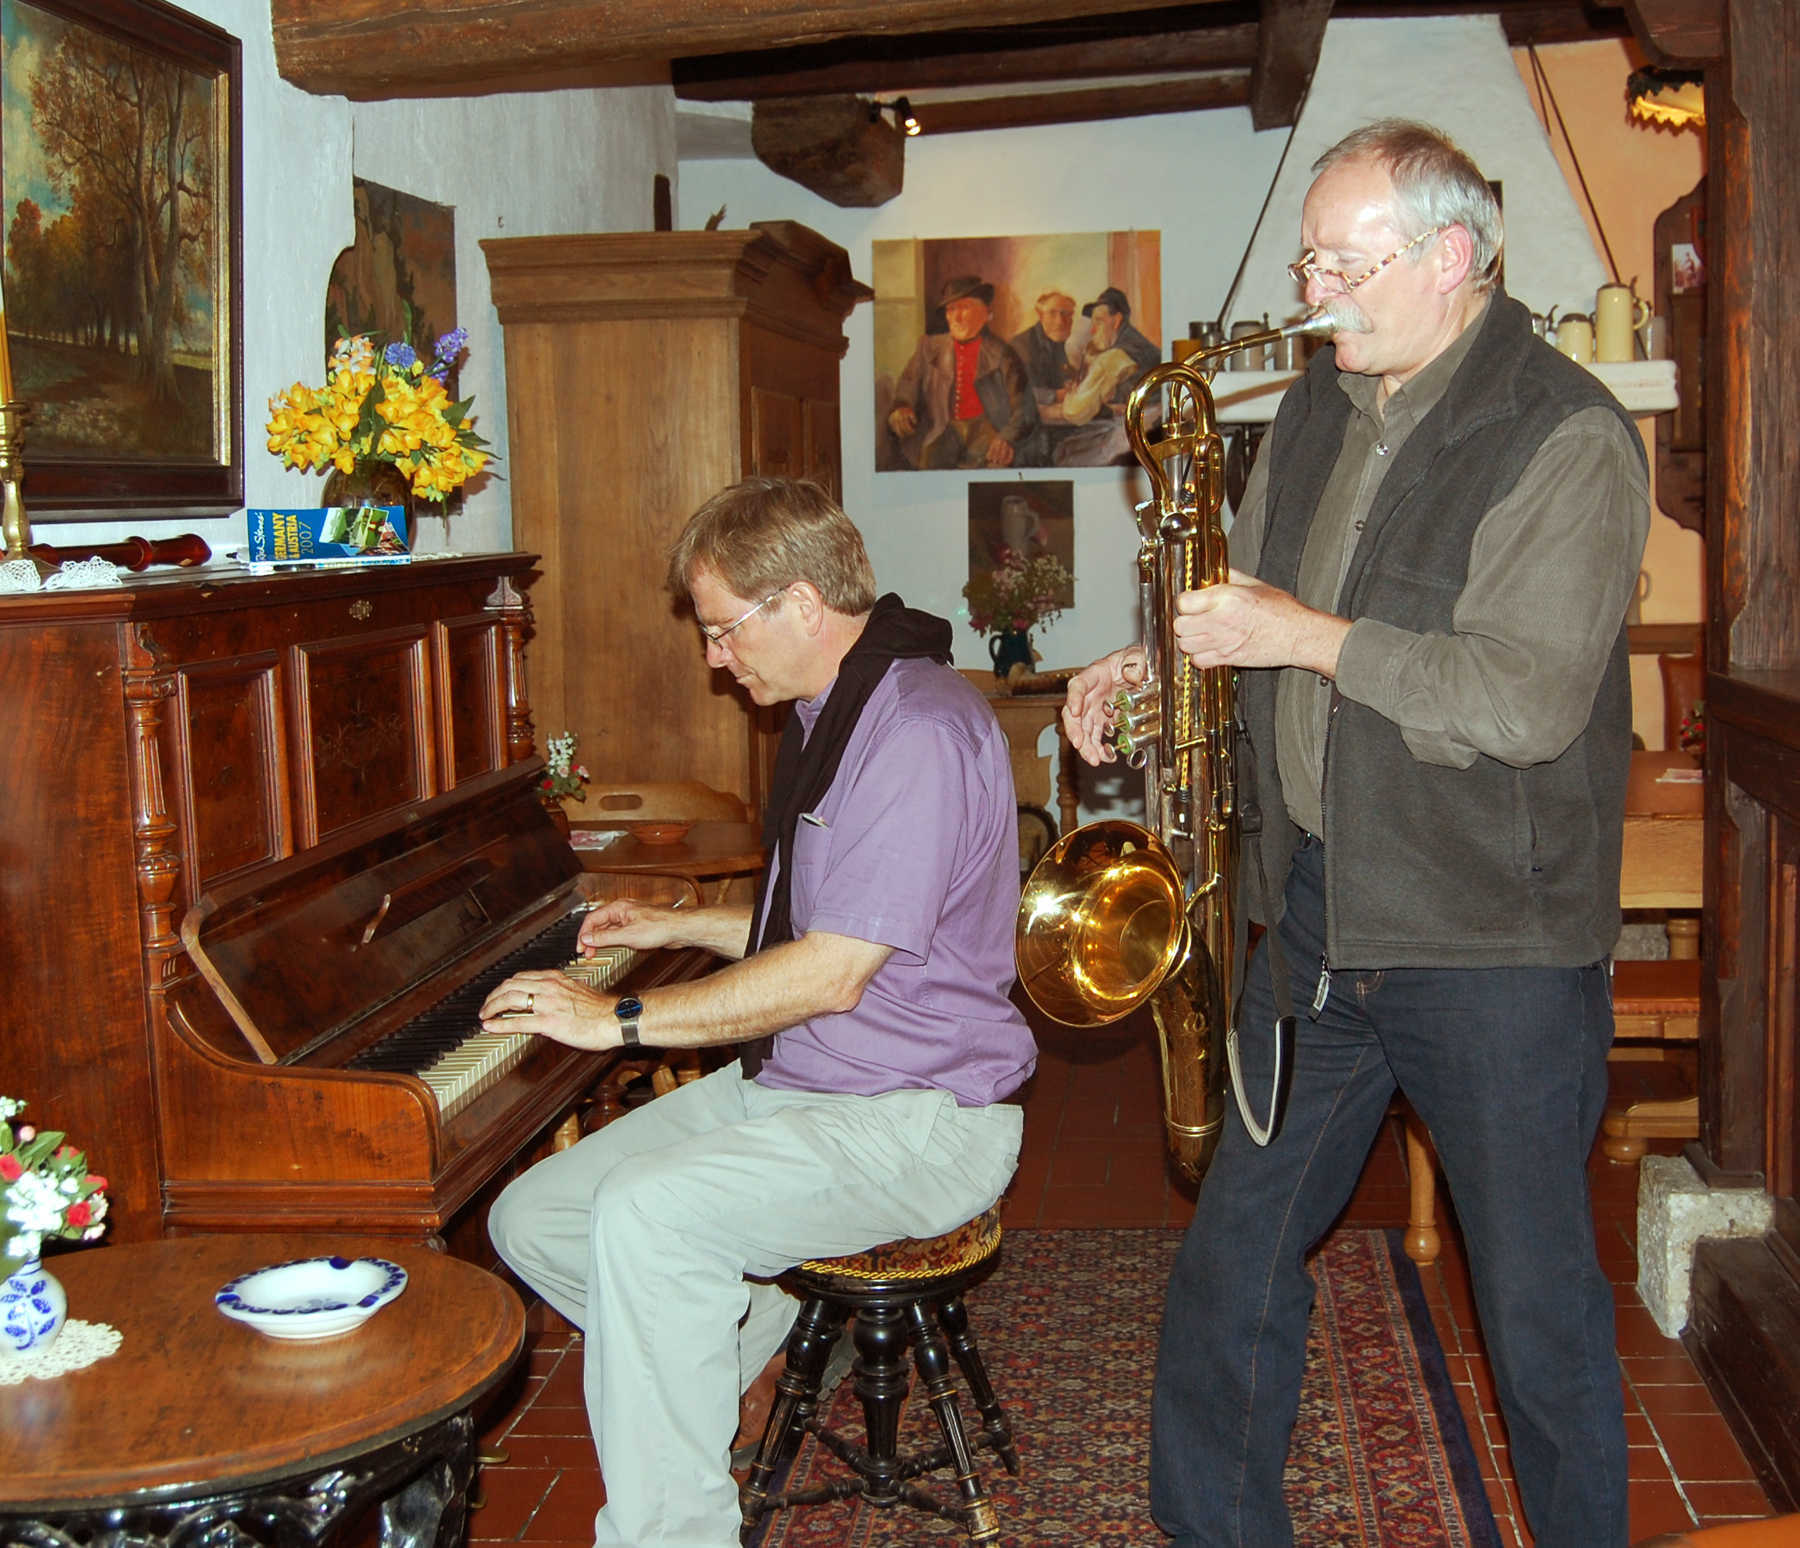 Rick at Piano, Rothenburg ob der Tauber, Germany